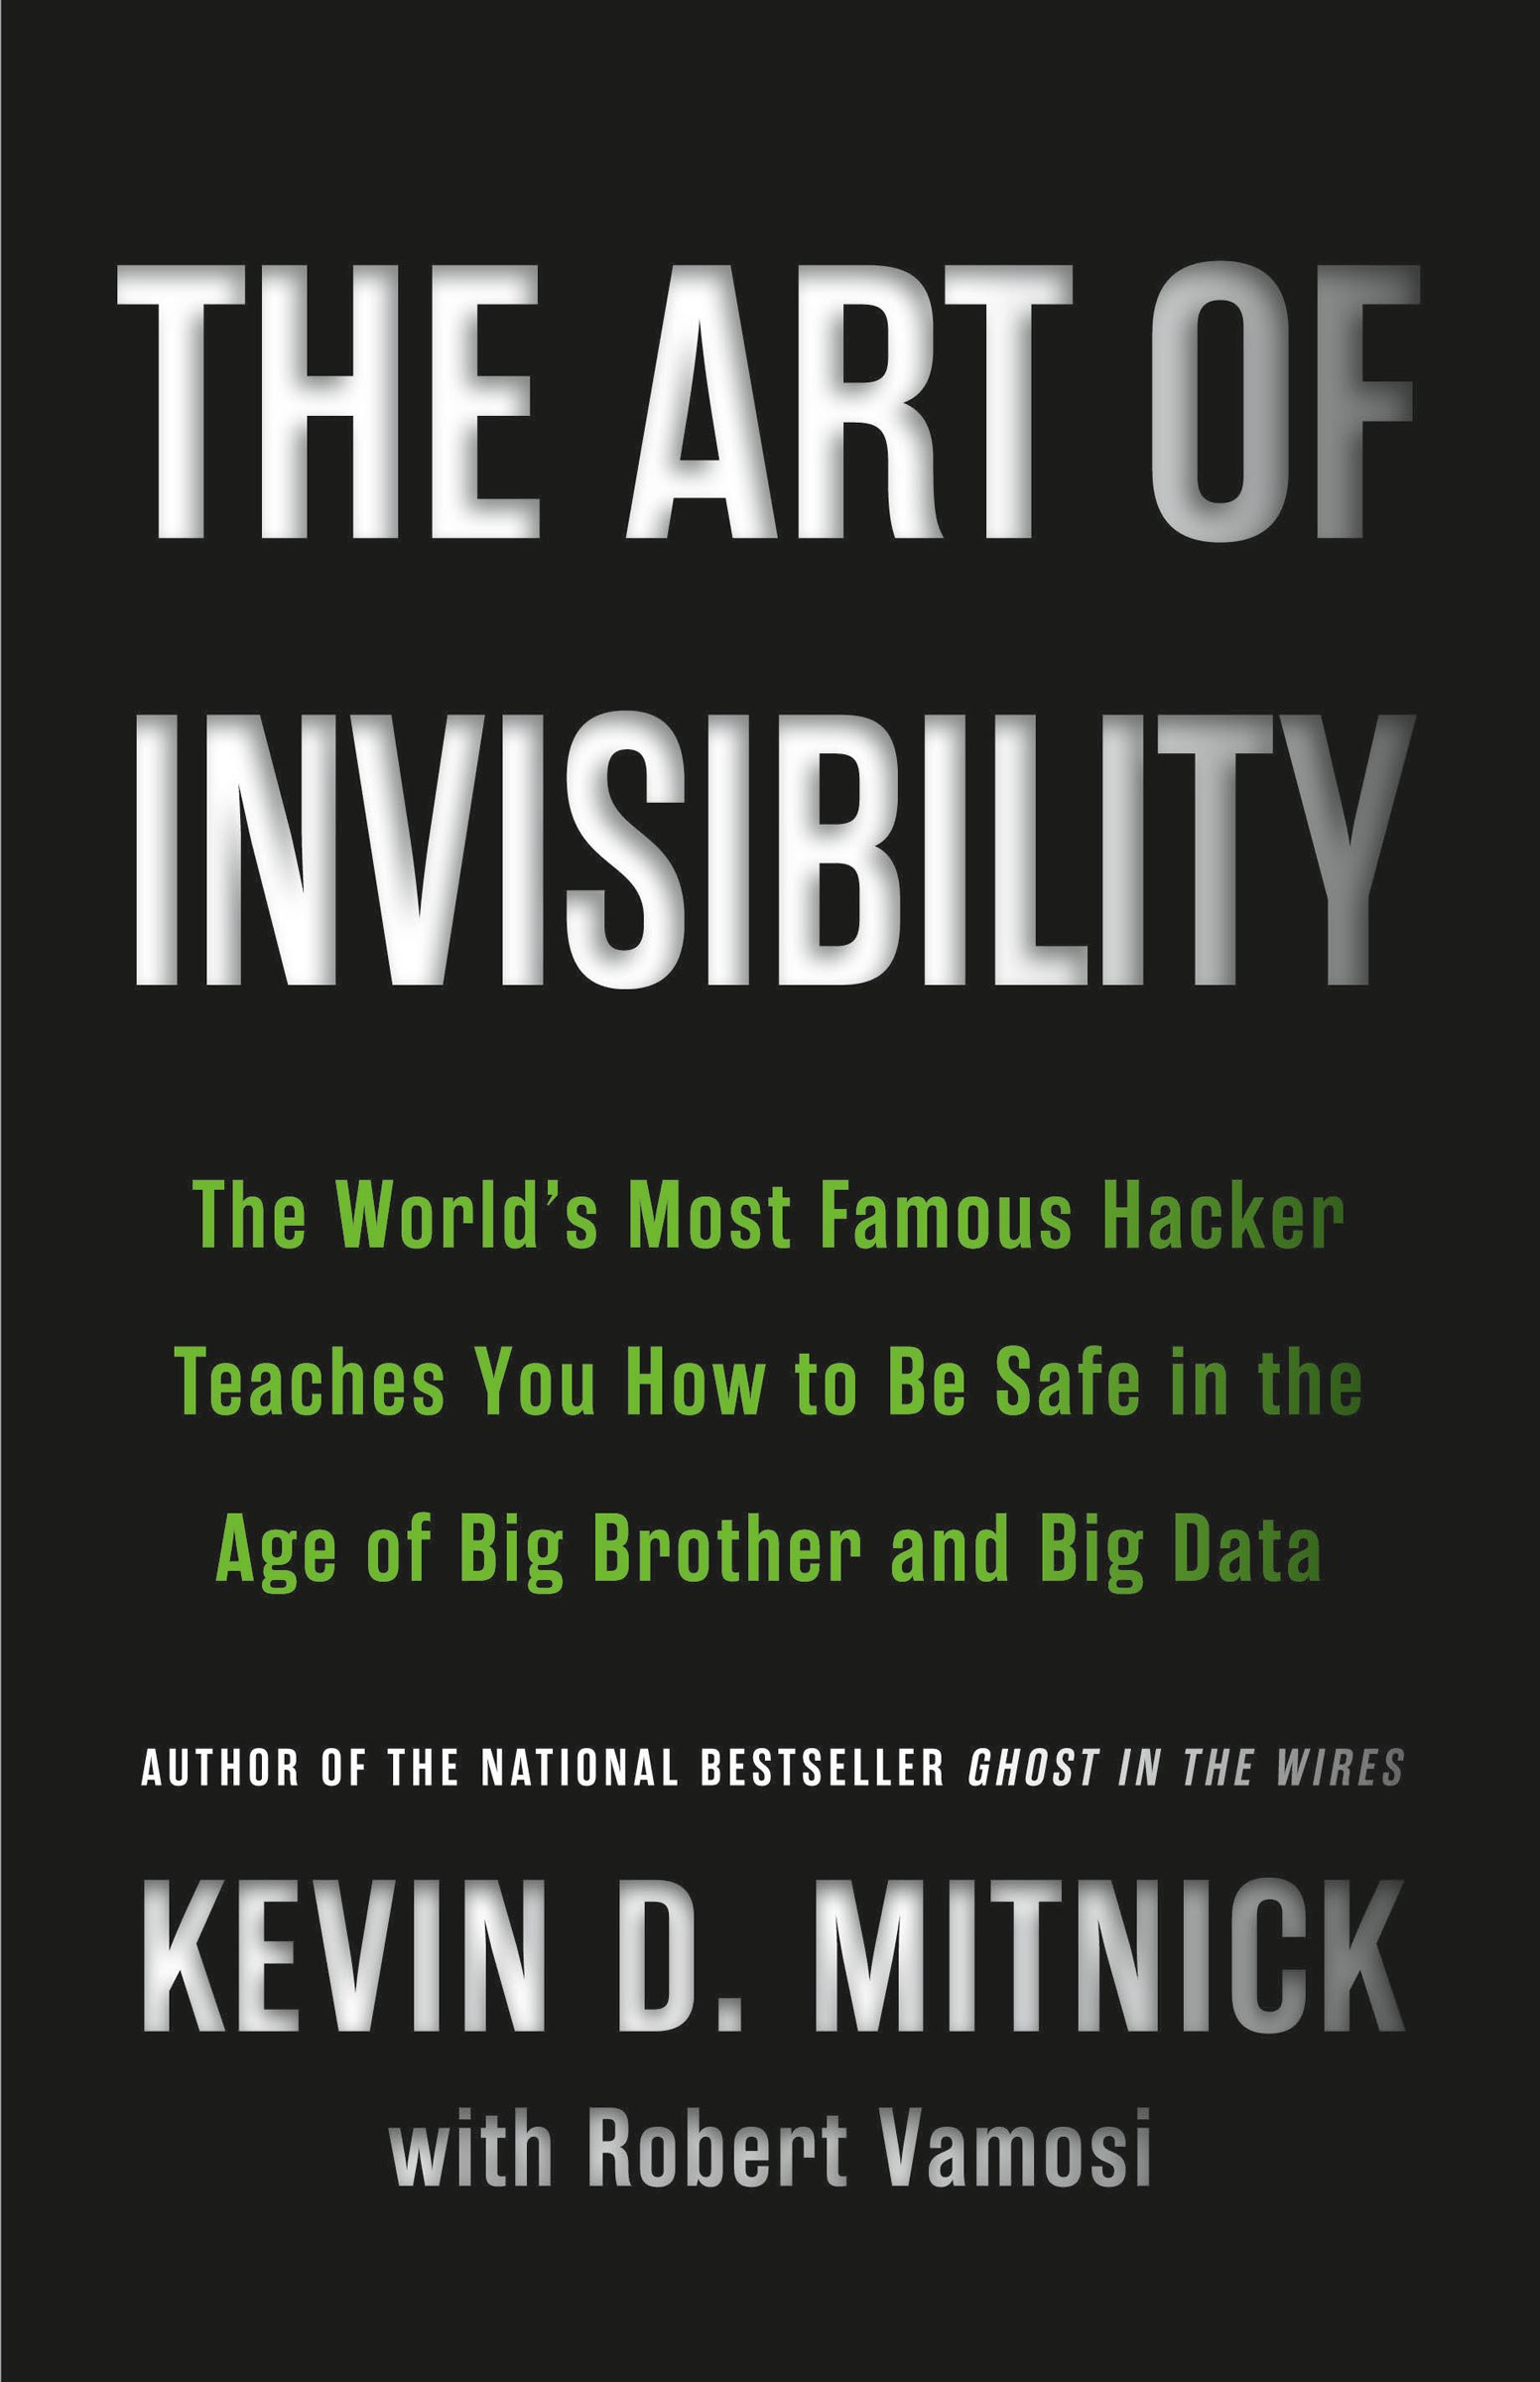 The Art of Invisibility The Worlds Most Famous Hacker Teaches You How to Be Safe in the Age of Big Brother and Big Data